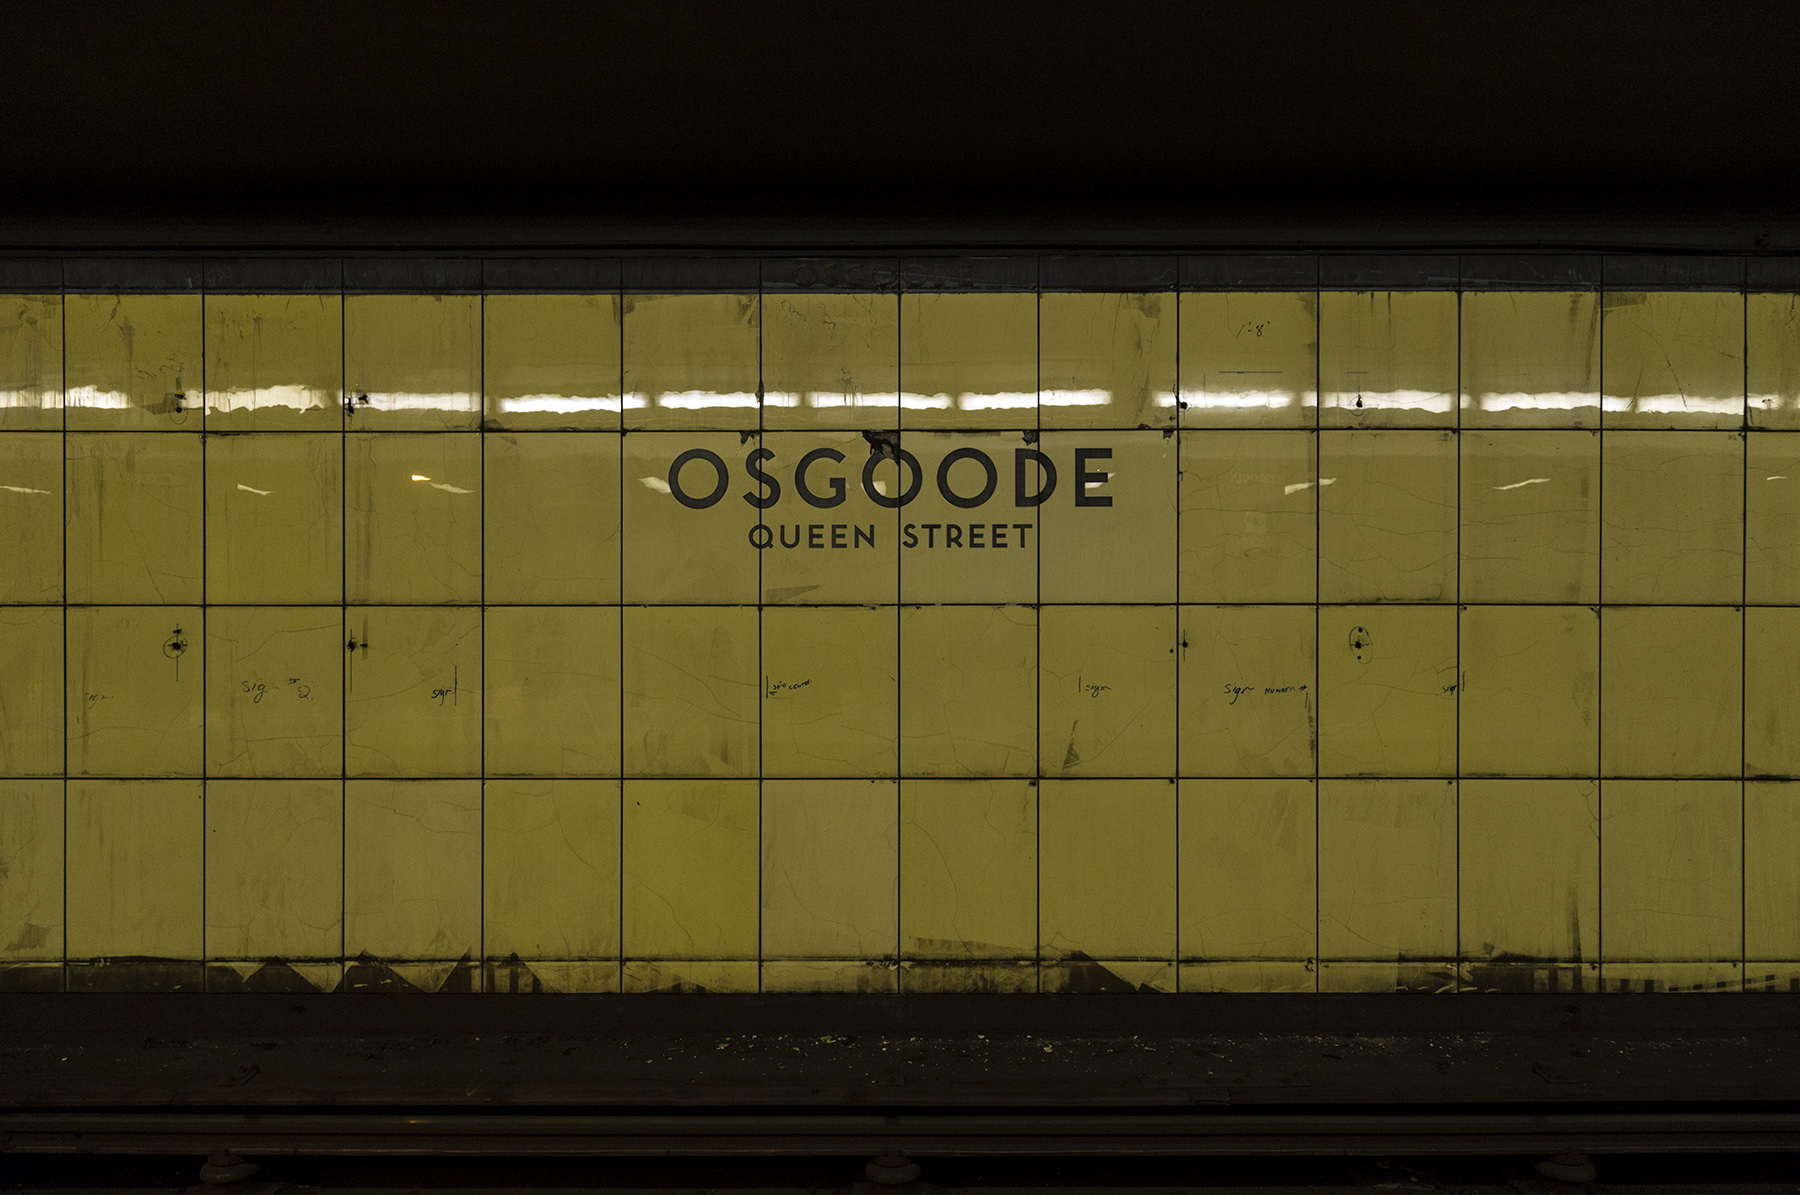 20151209. This is what Osgoode subway station looked like in 196